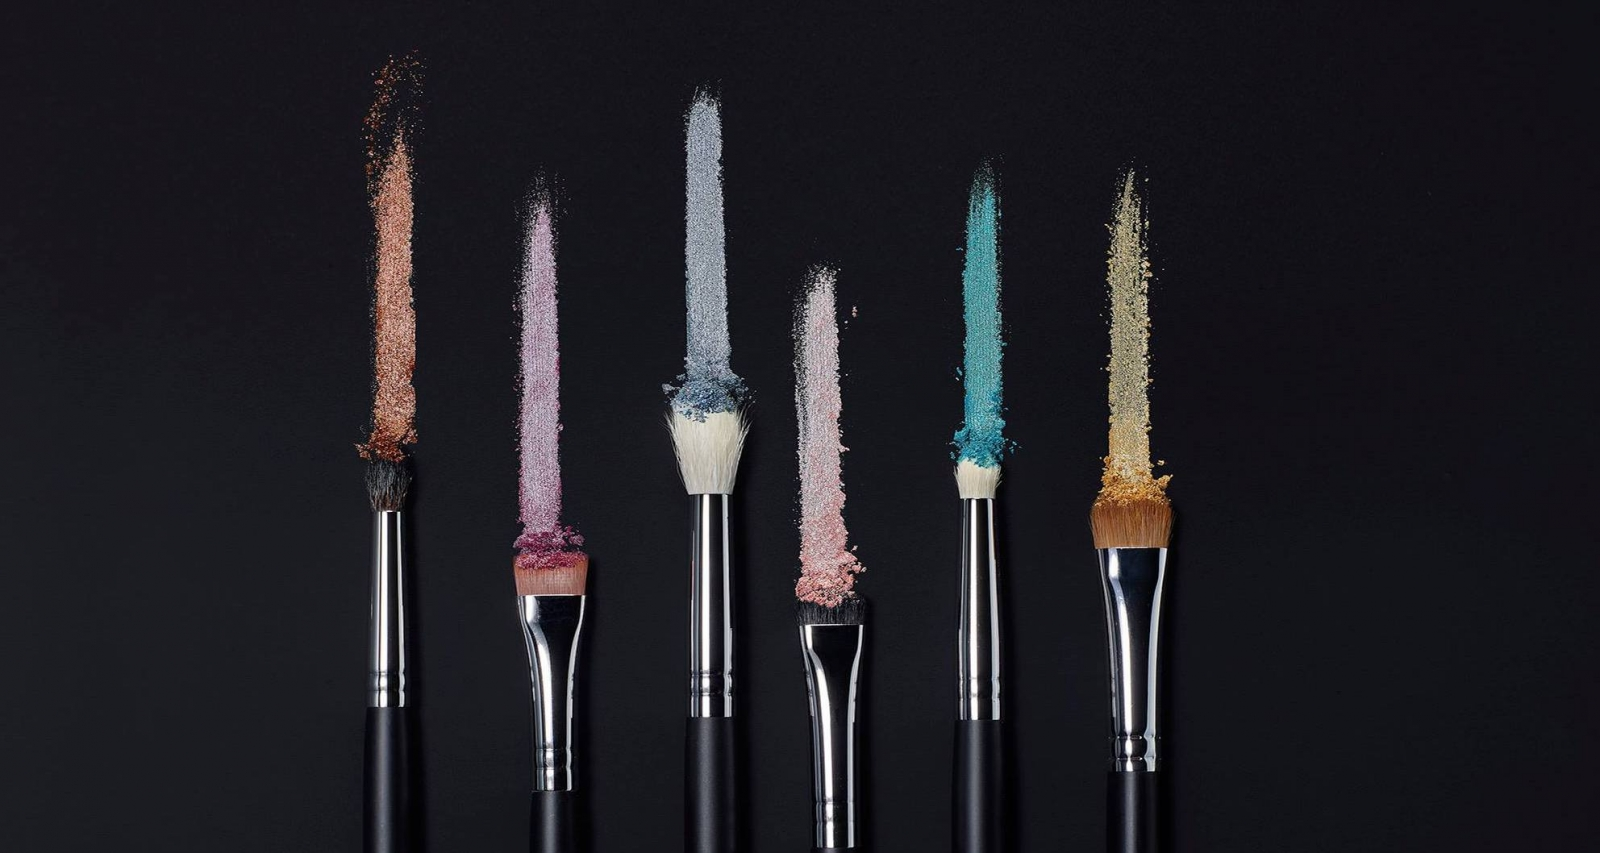 Morphe Brushes and makeup palette. Courtesy Mall of America.